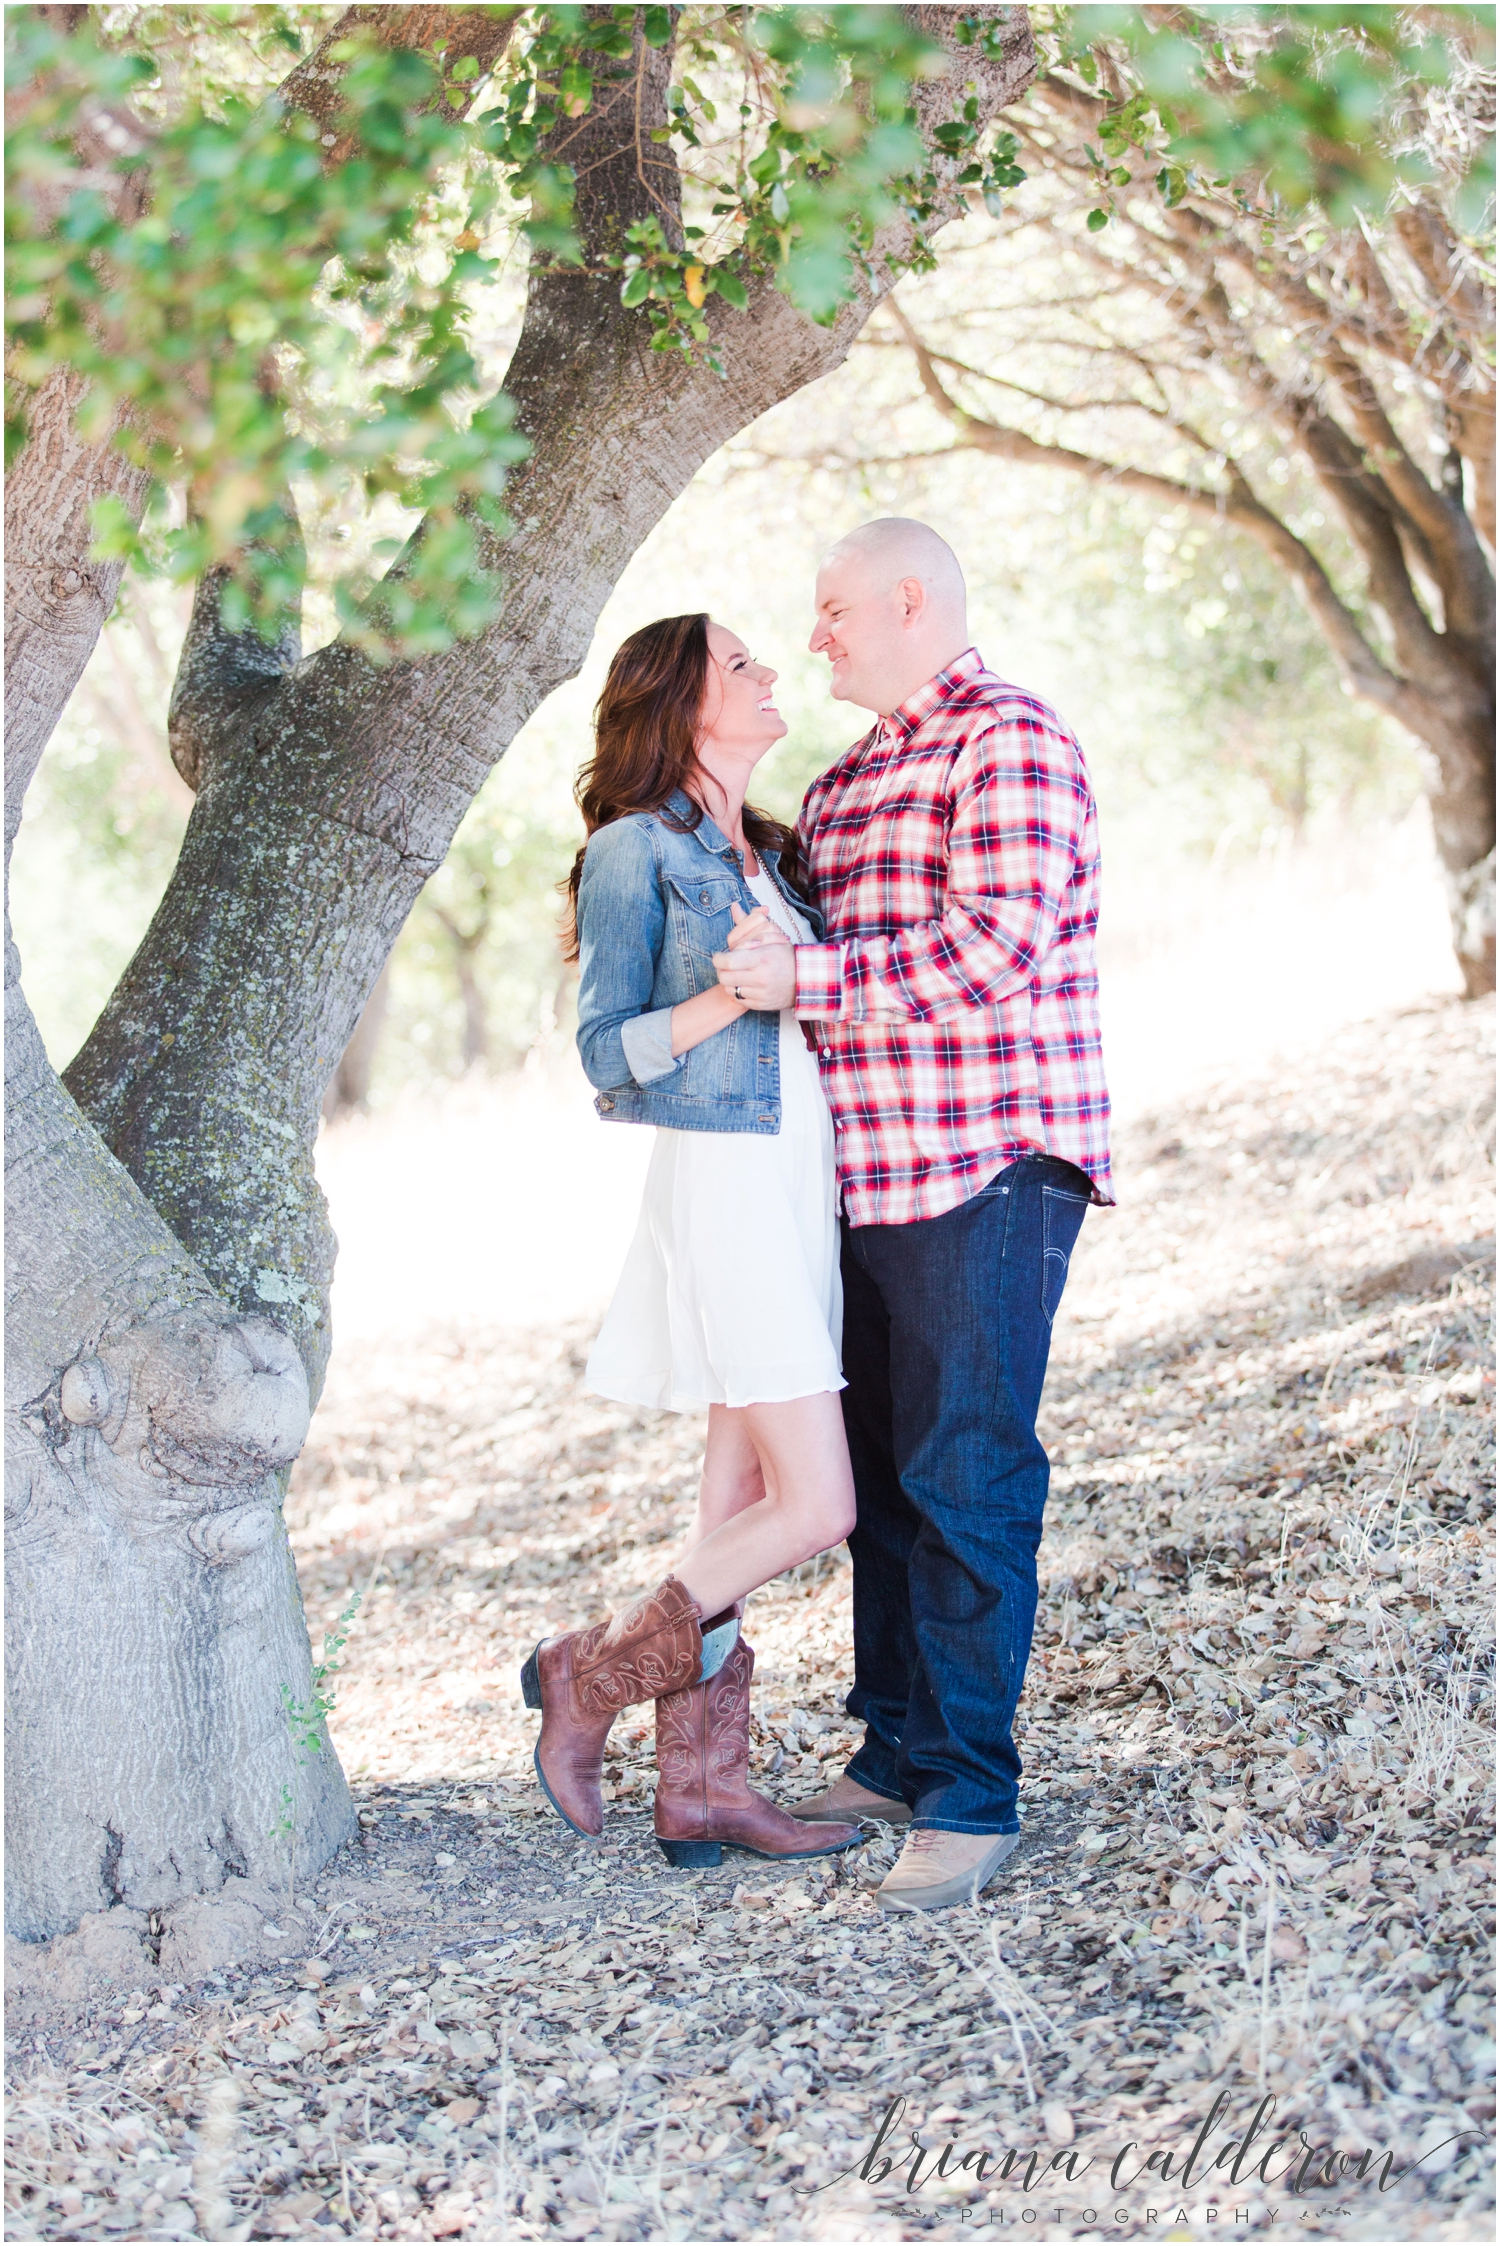 Fall mini session pictures by Briana Calderon Photography_1188.jpg